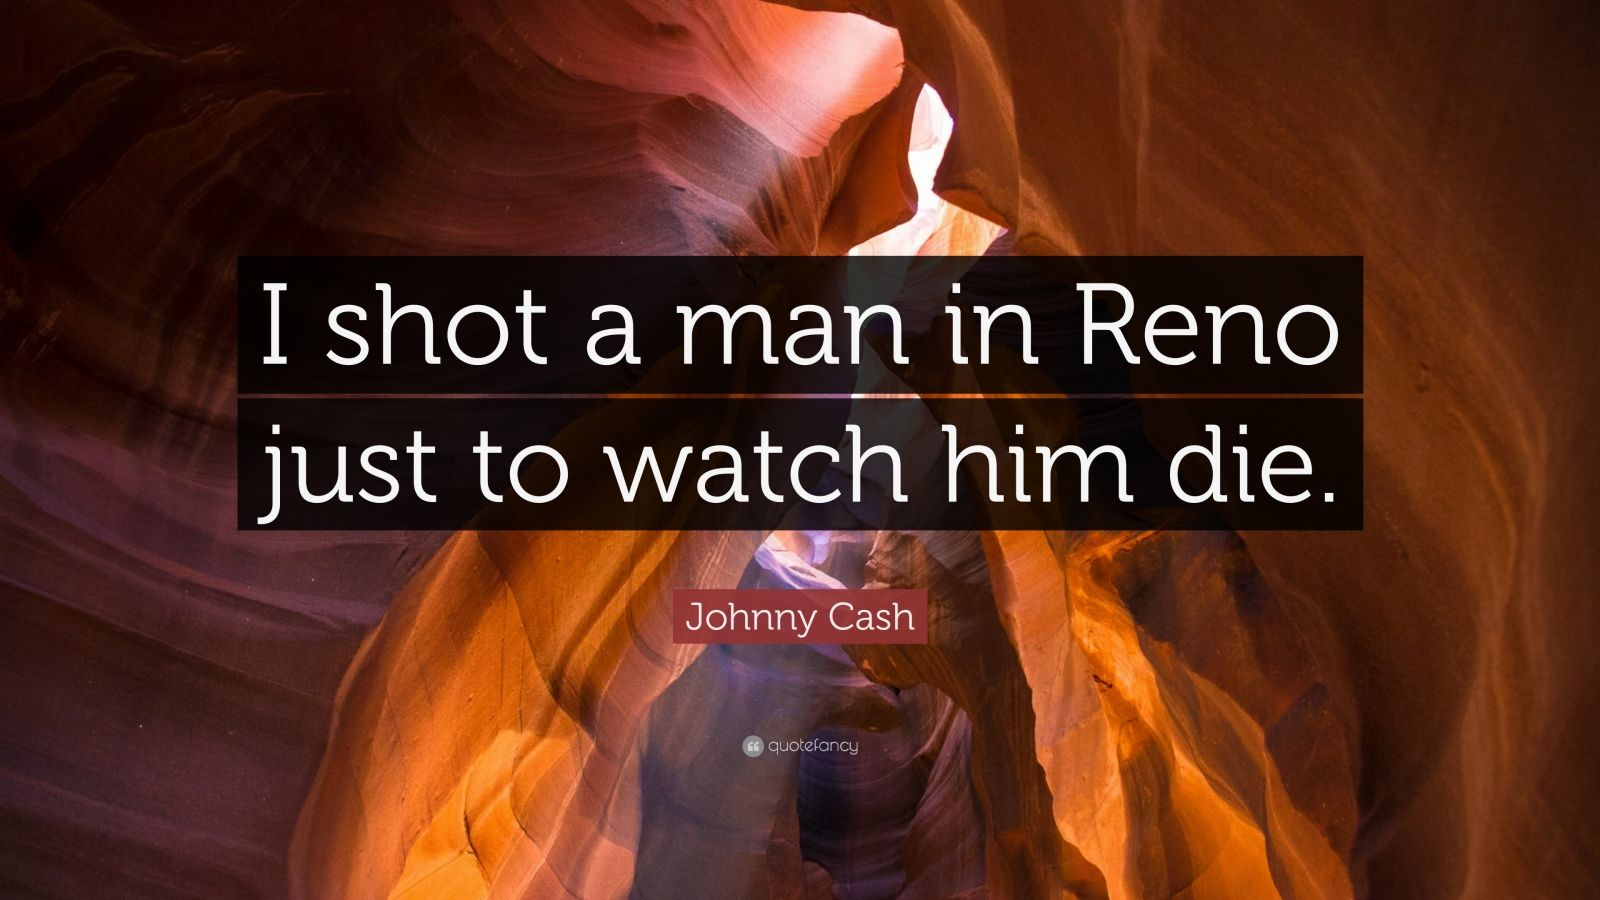 """Johnny Cash Quote: """"I shot a man in Reno just to watch him die."""""""